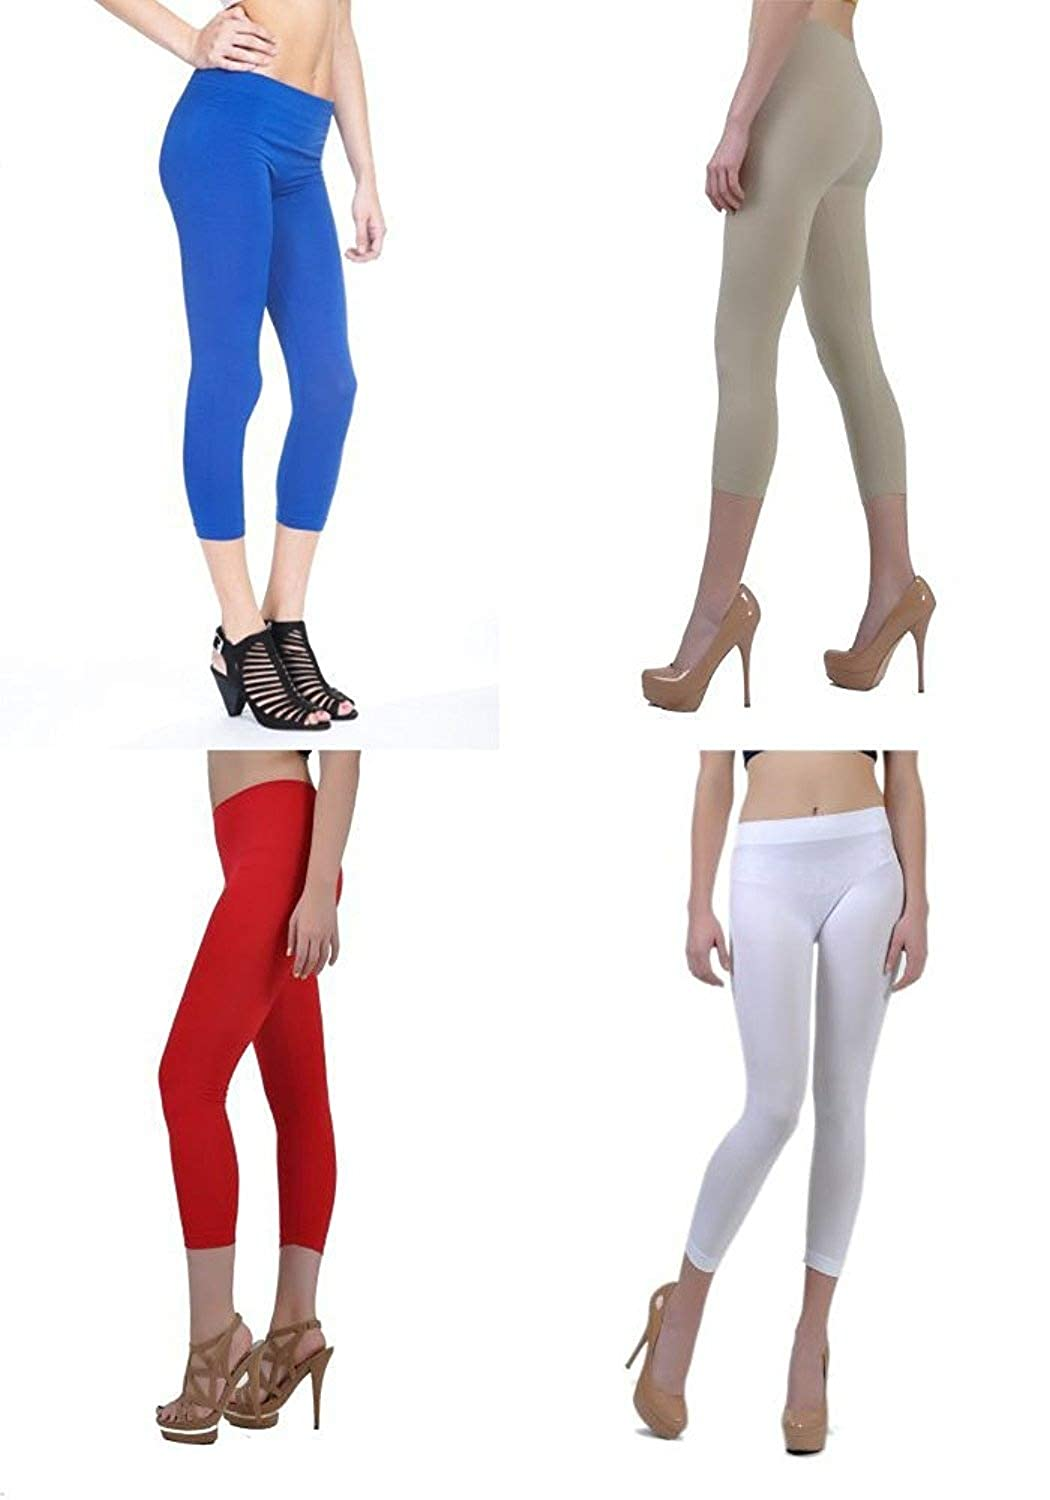 982362dd2c858 The Bundle comes with 4 packs of Legging in color: Royal Blue/Khpki/Red/ White (One color each) 92% Nylon, 8% Spandex. Made with a very soft,  Form-Fitting, ...